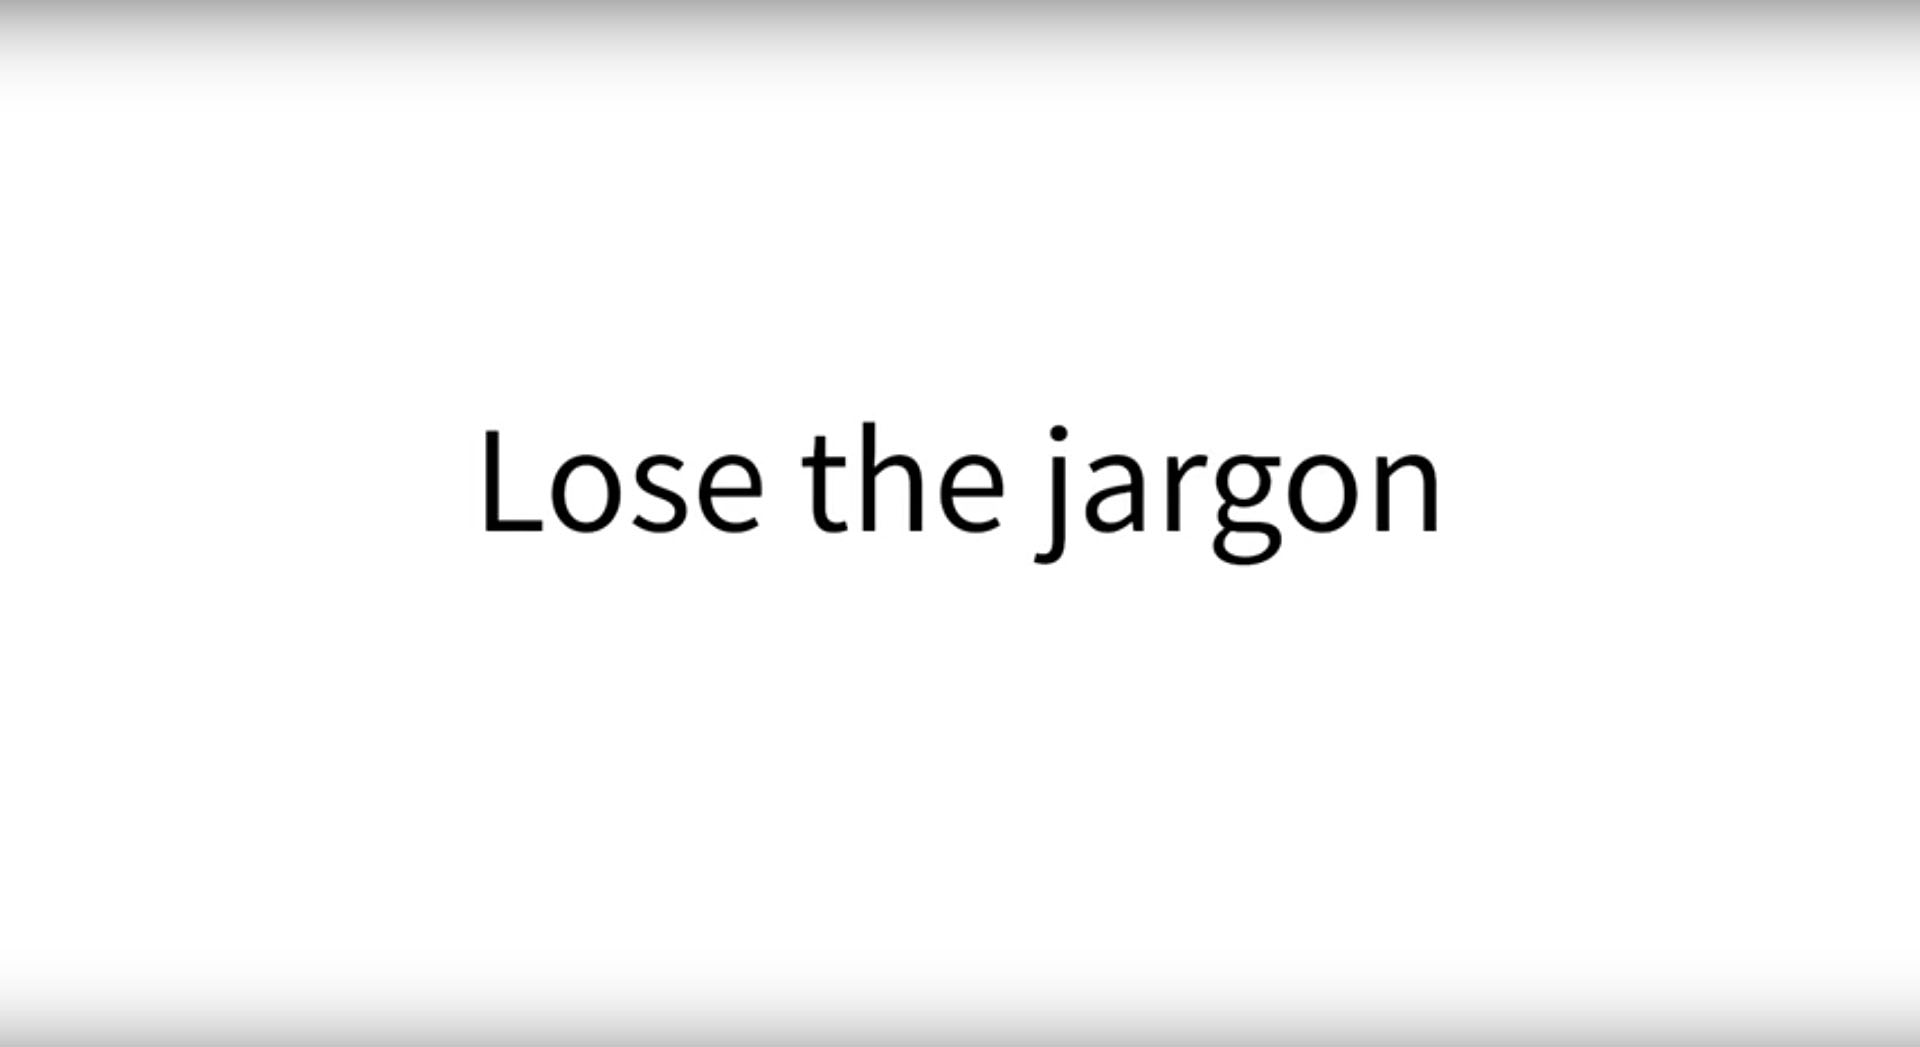 Lose the IoT jargon